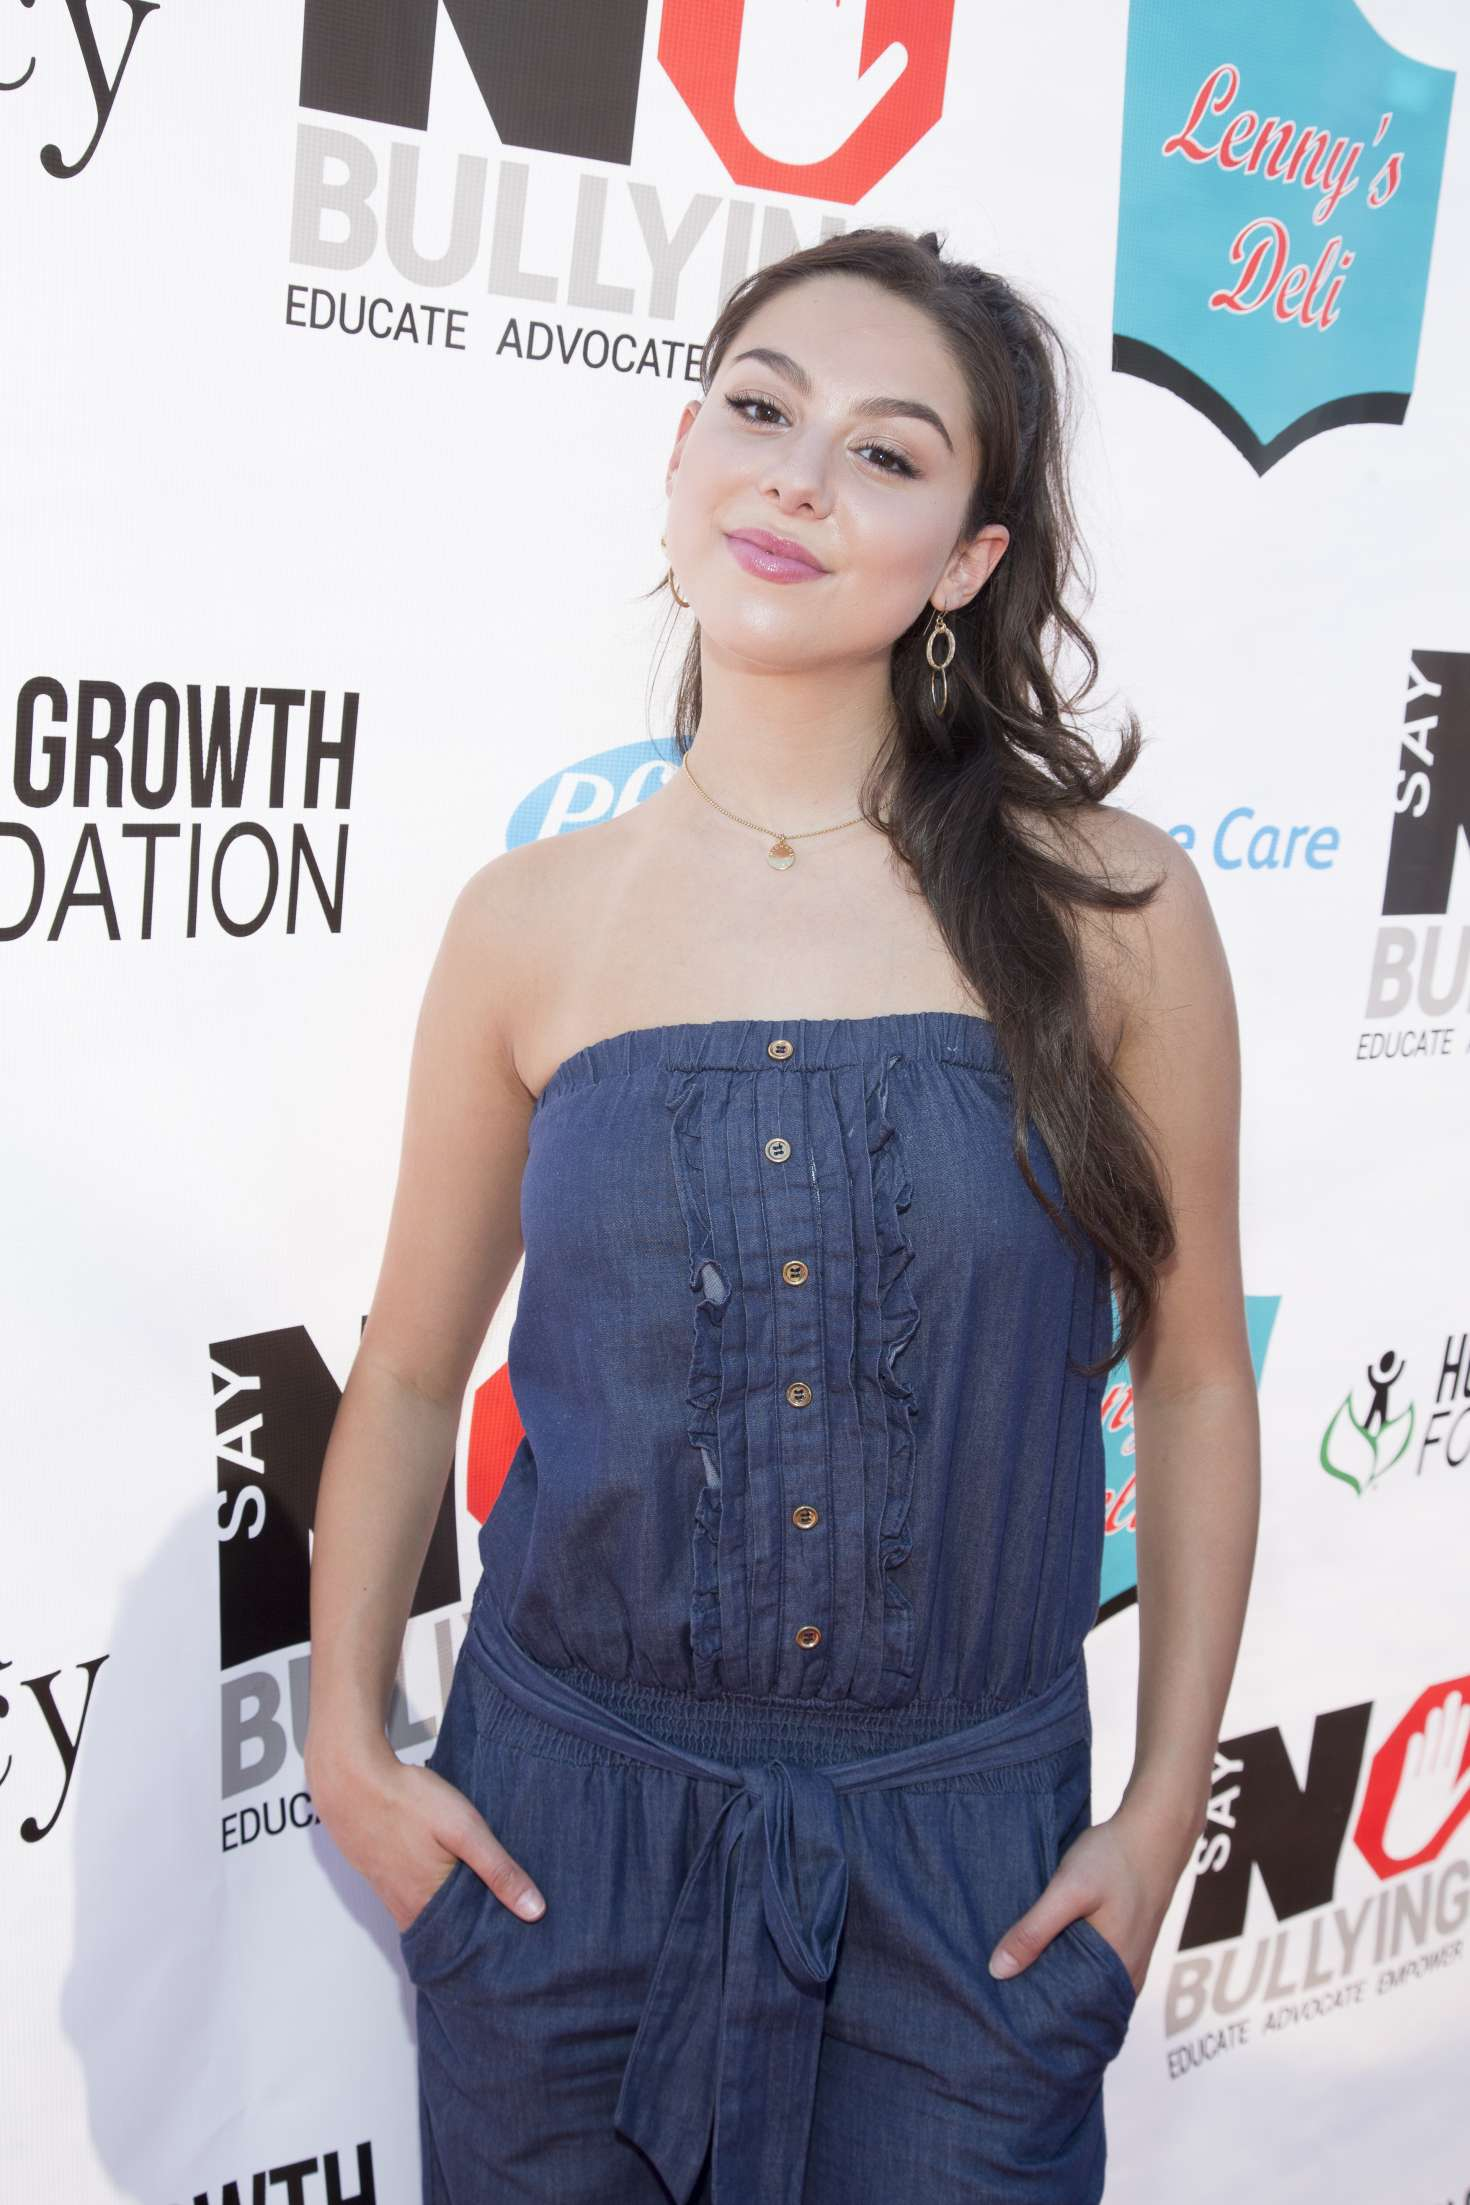 Kira Kosarin 2016 : Kira Kosarin: 2016 Say NO Bullying Festival Held -03